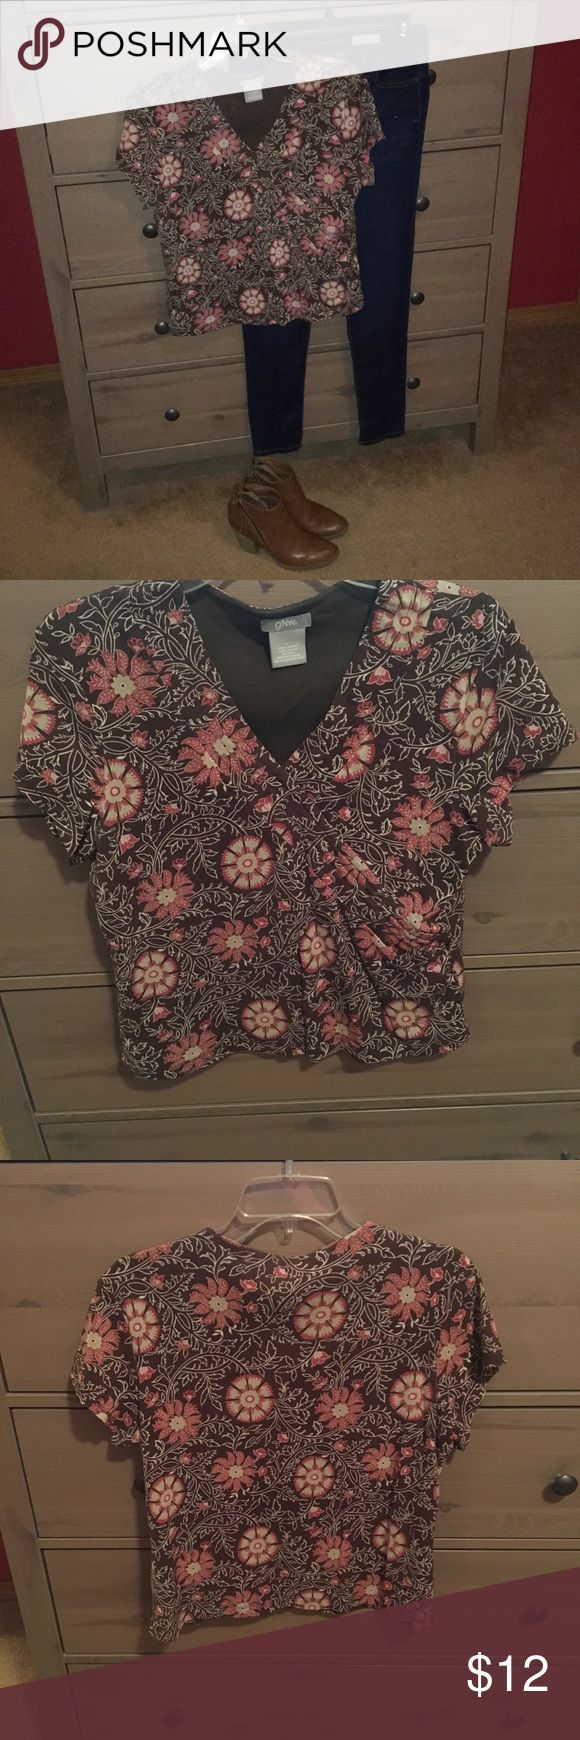 GNW Brand Top GNW Brand Top. Hardly worn and in great condition. 100% Nylon. Pair with skinny jeans and boots (not included). Bundle with other items and save 10%. GNW Tops Blouses